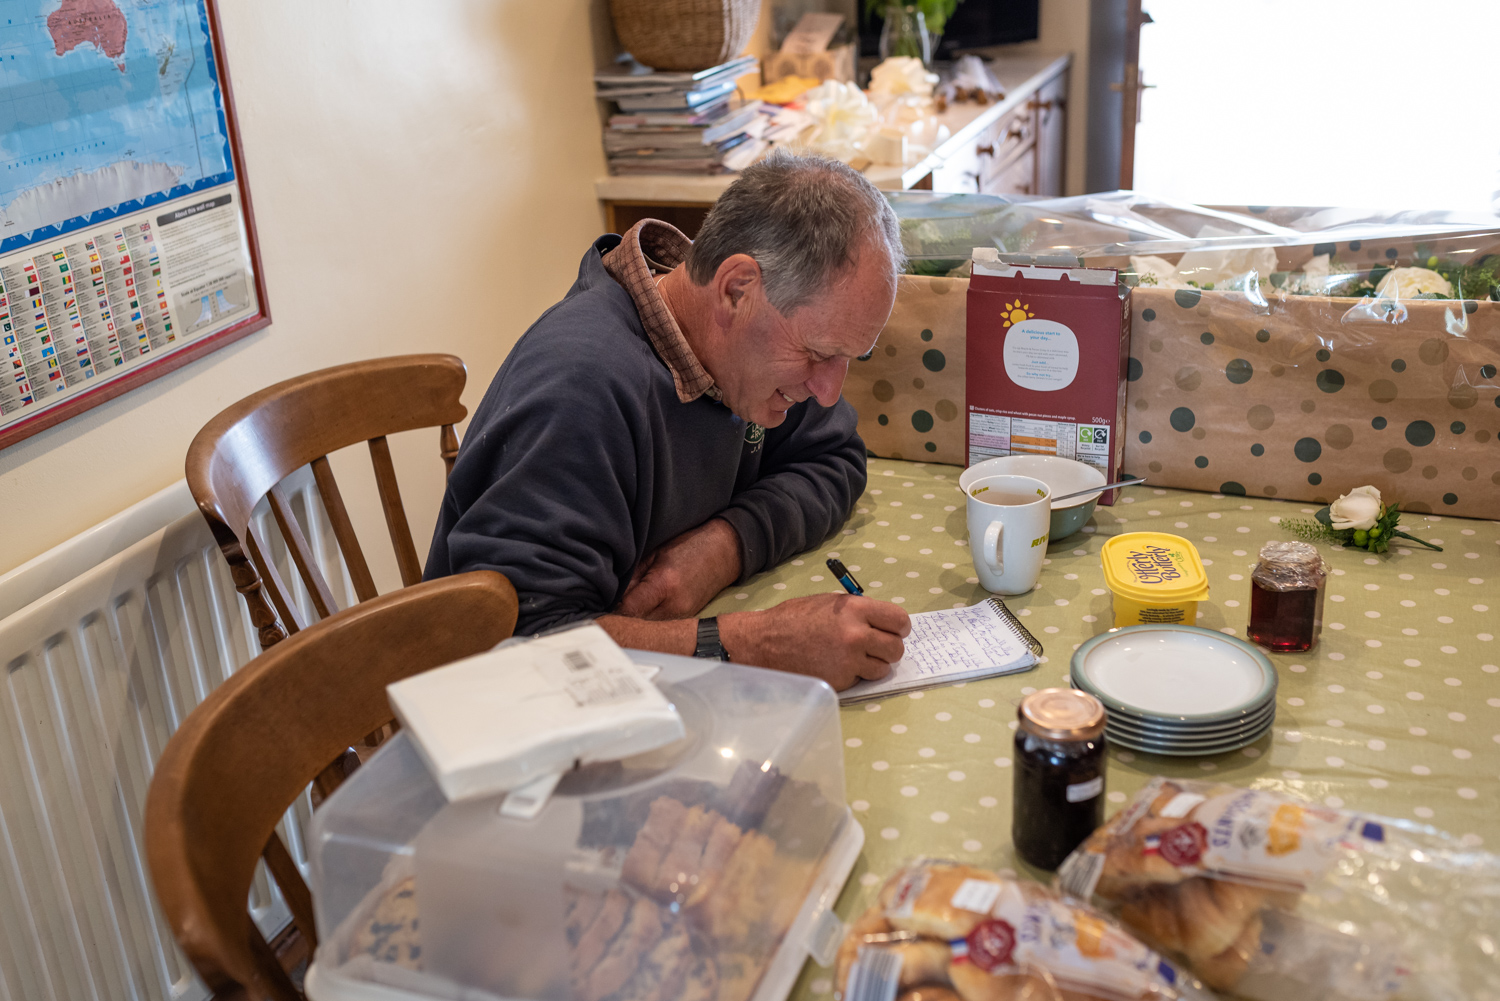 Dad writing speech at kitchen table